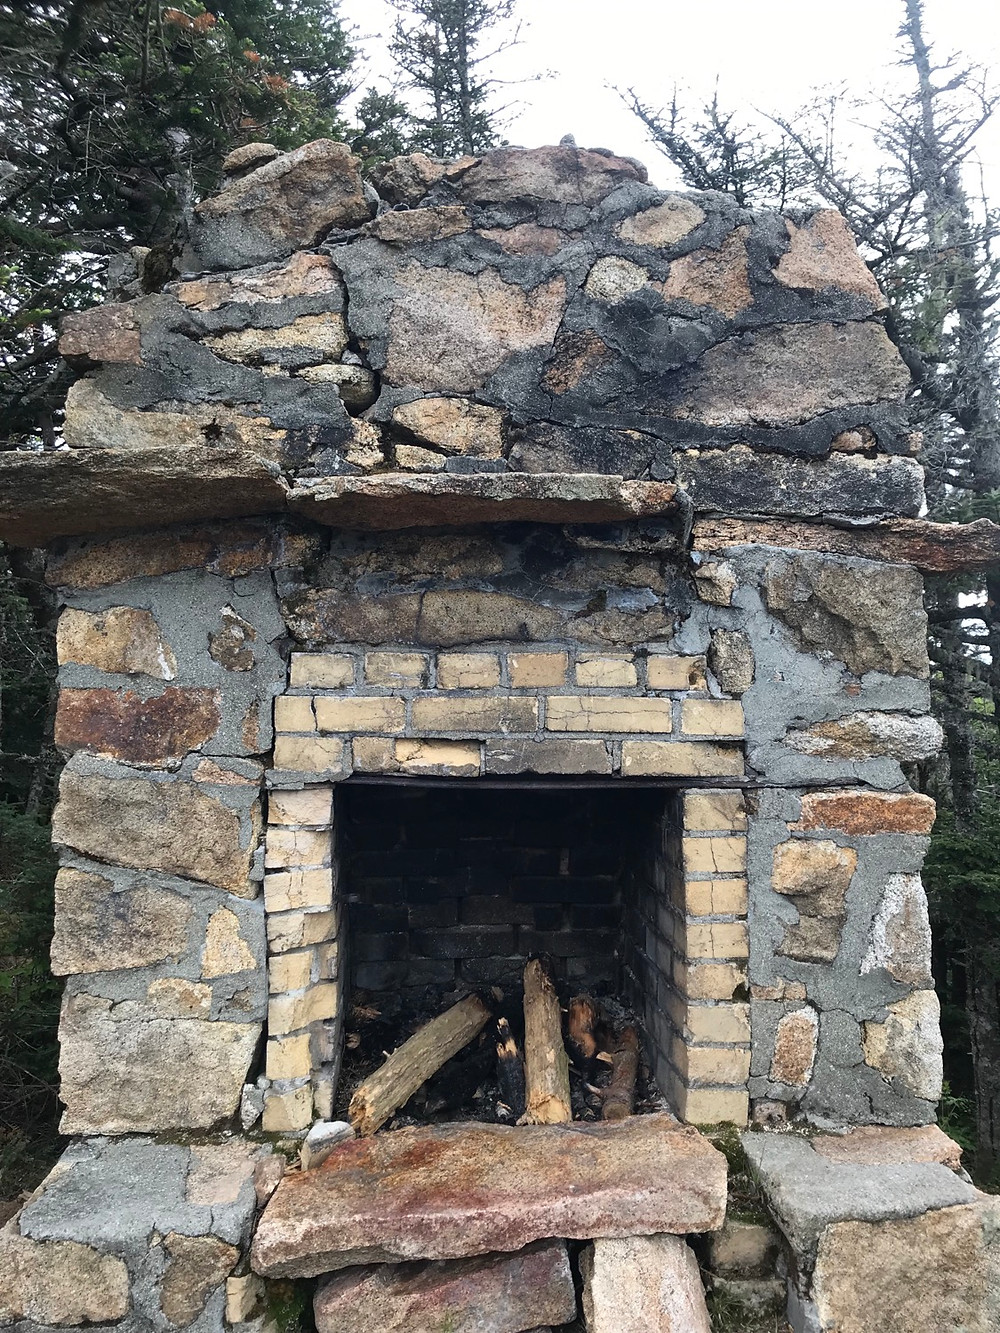 A fire place is all that remains of an old shelter